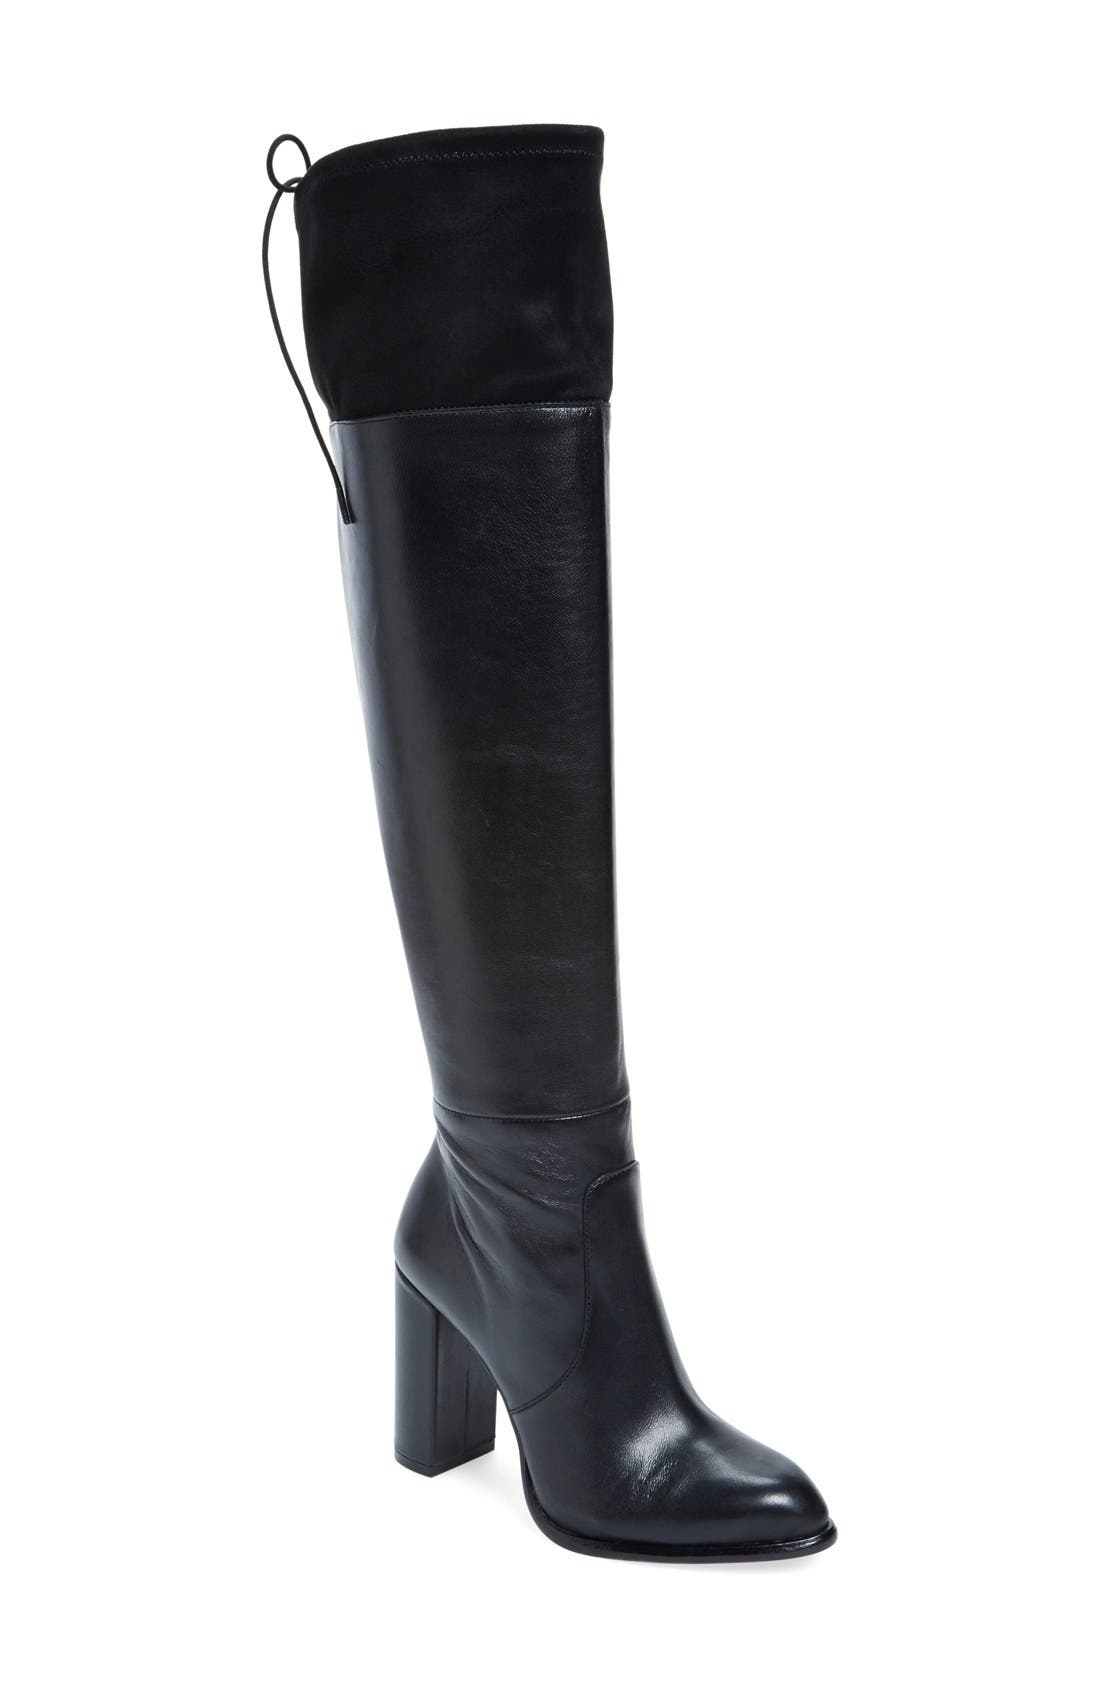 Alternate Image 1 Selected - French Connection 'Calina' Over the Knee Boot (Women)